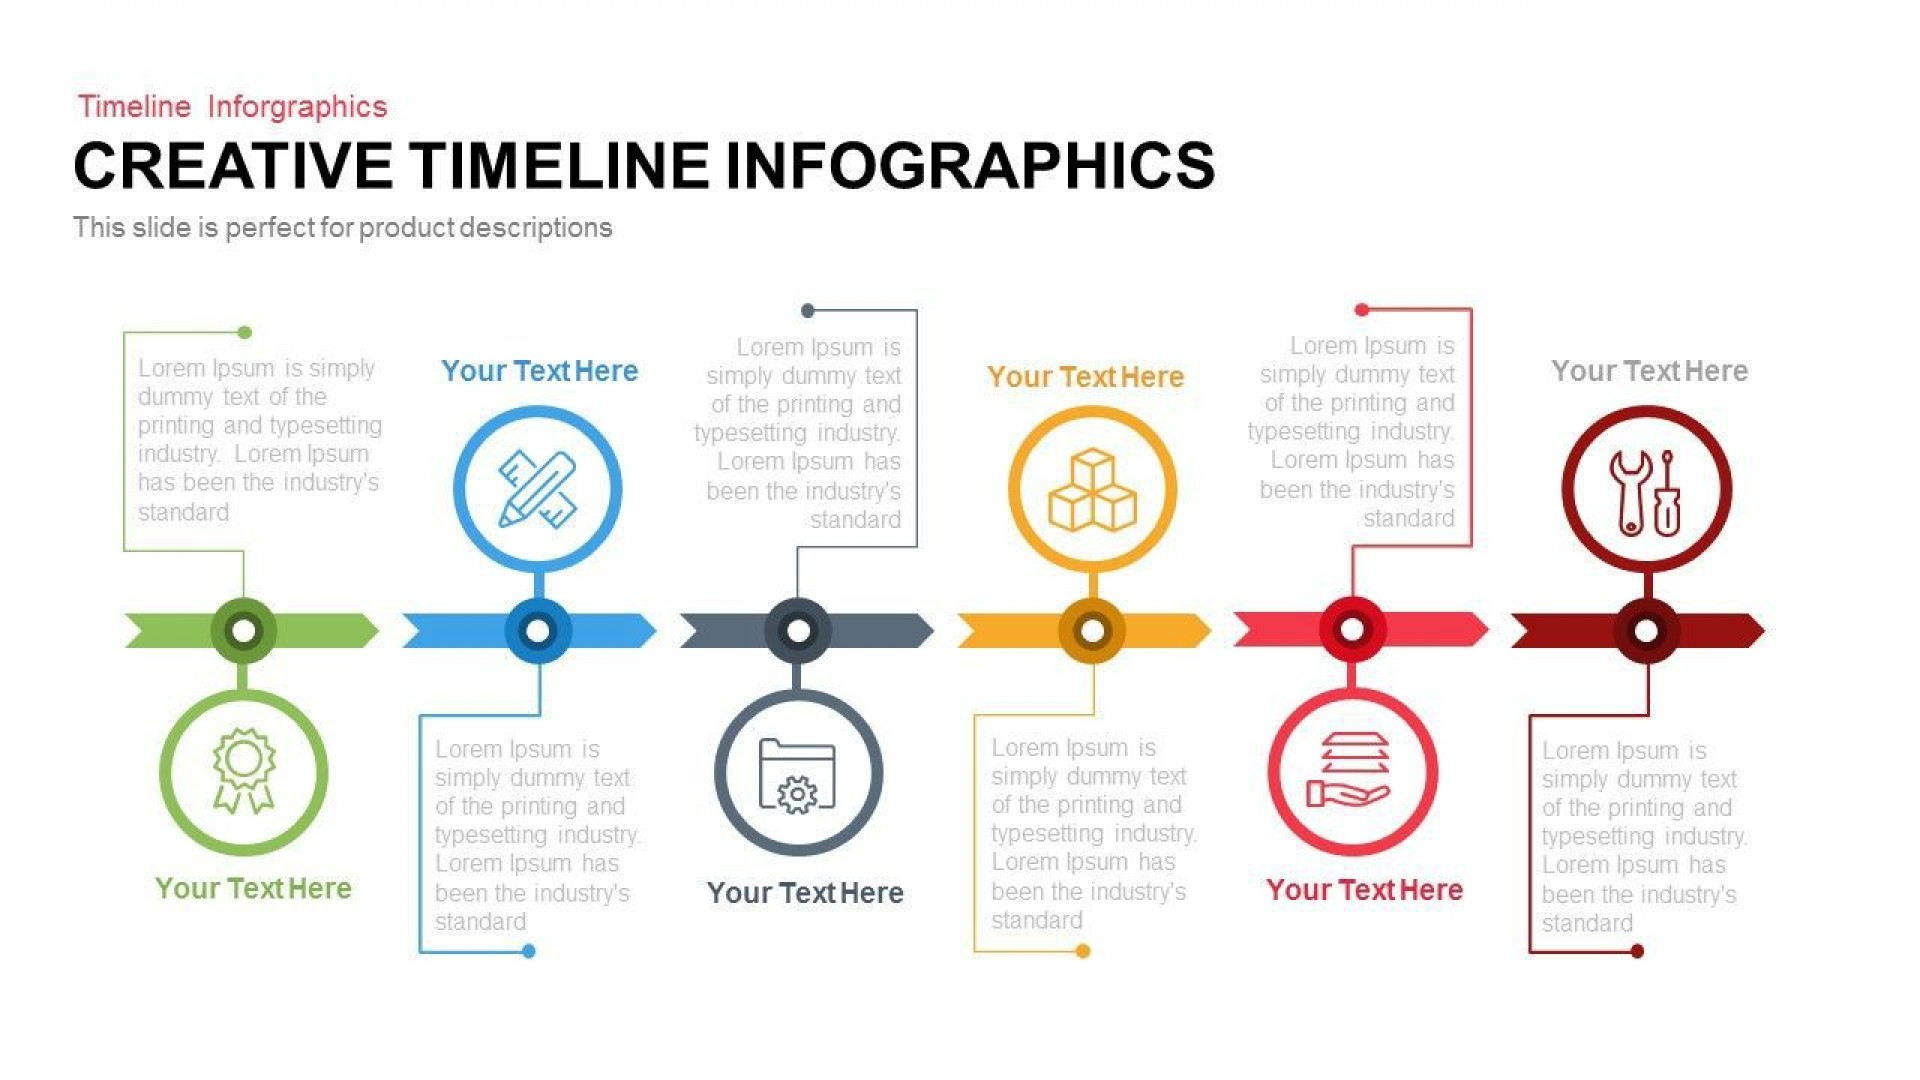 001 Surprising Timeline Example Presentation Design  Project Slide Template1920